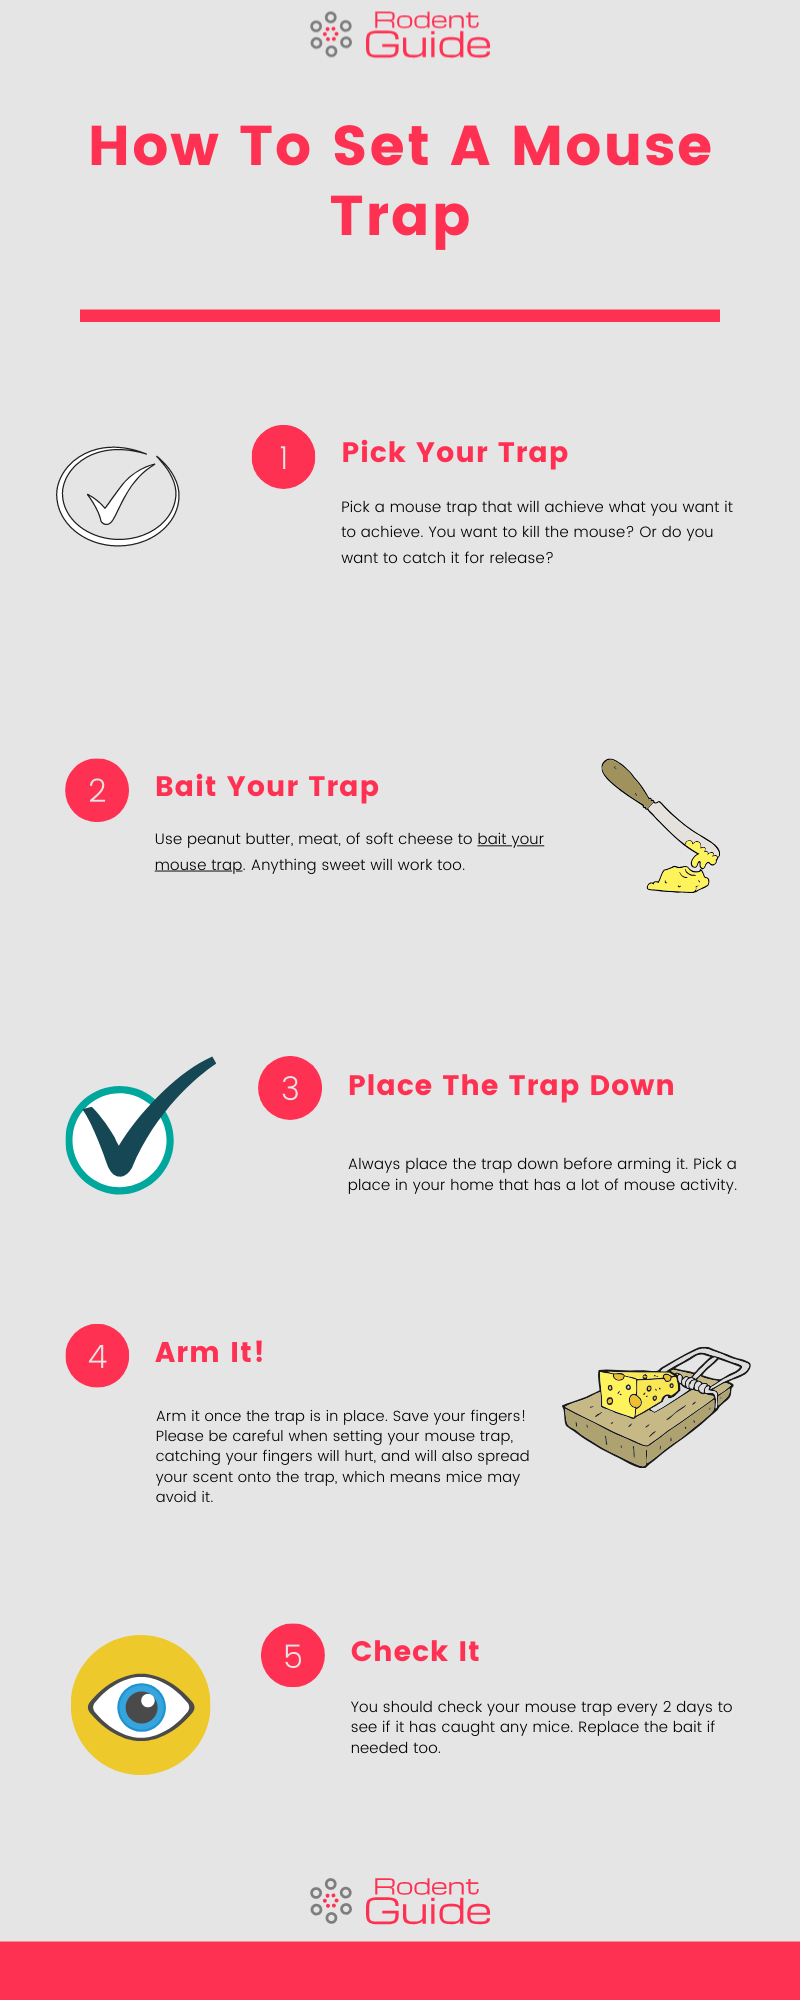 How to set a mouse trap infographic